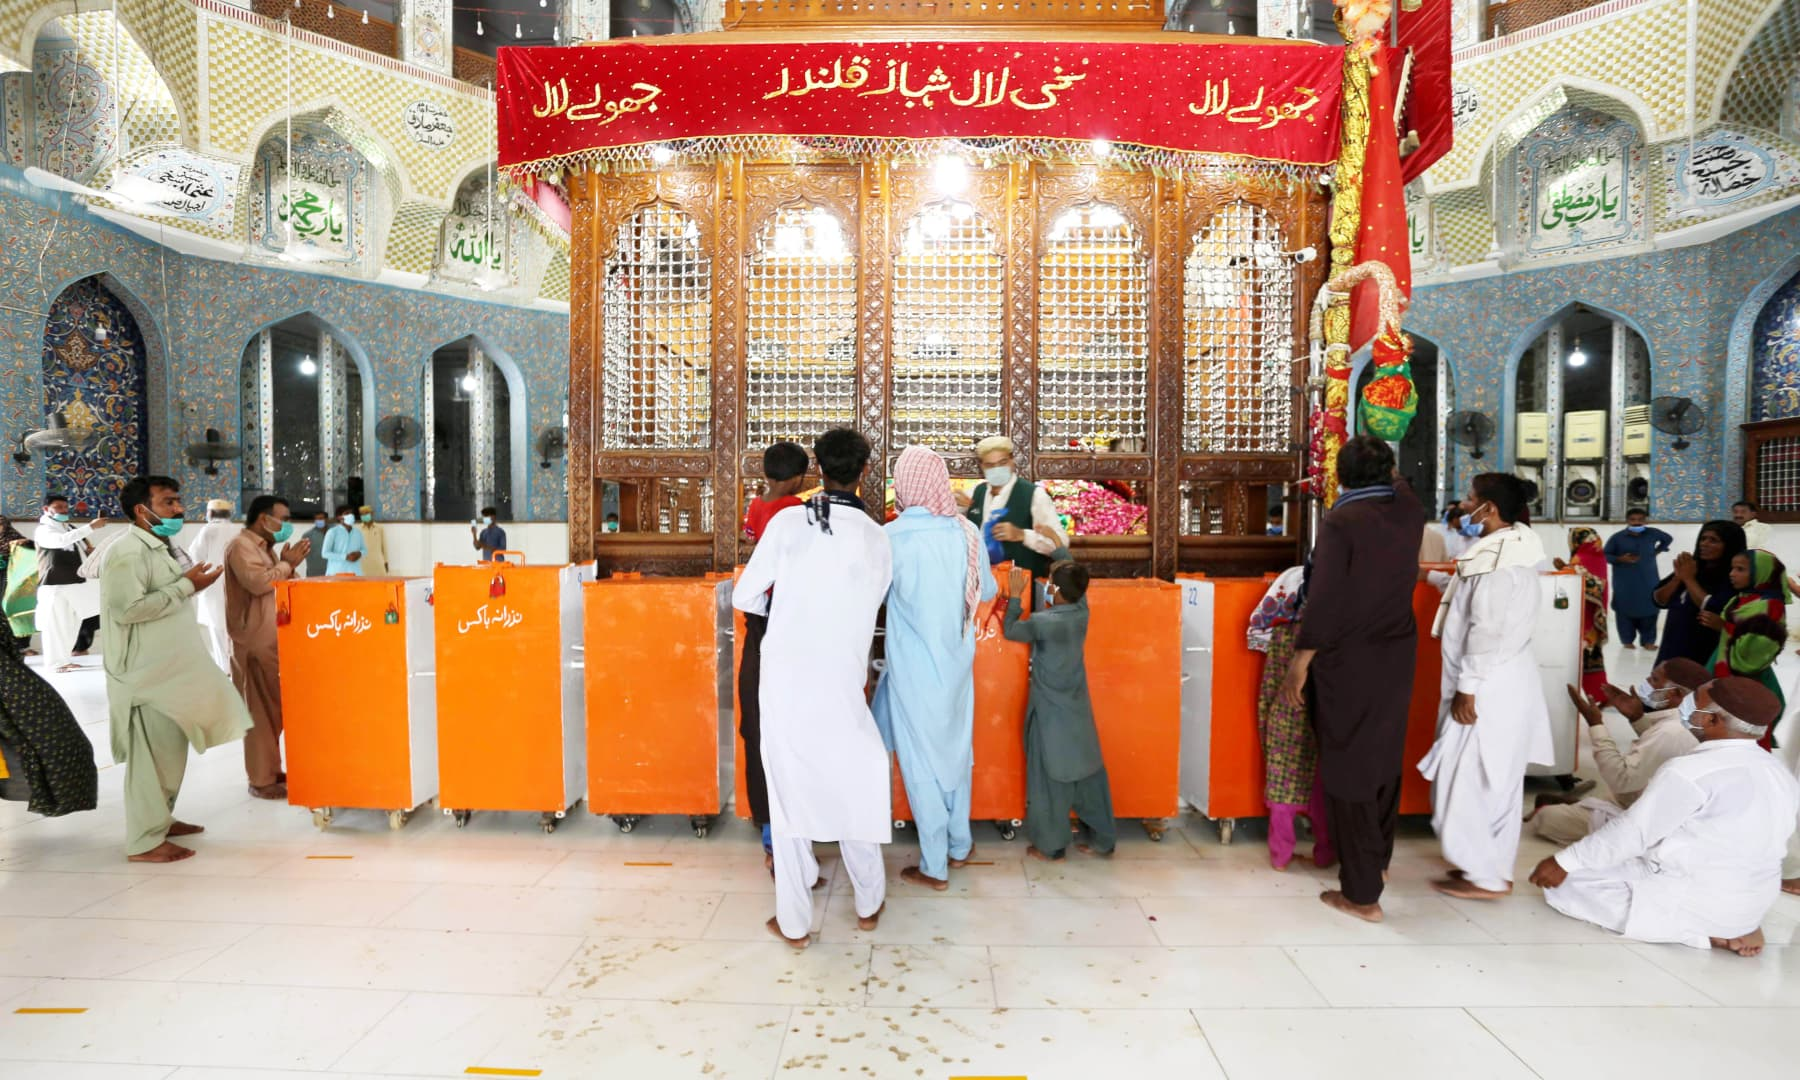 An inside view of Lal Shahbaz Qalandar shrine after it opened to visitors on Aug 17